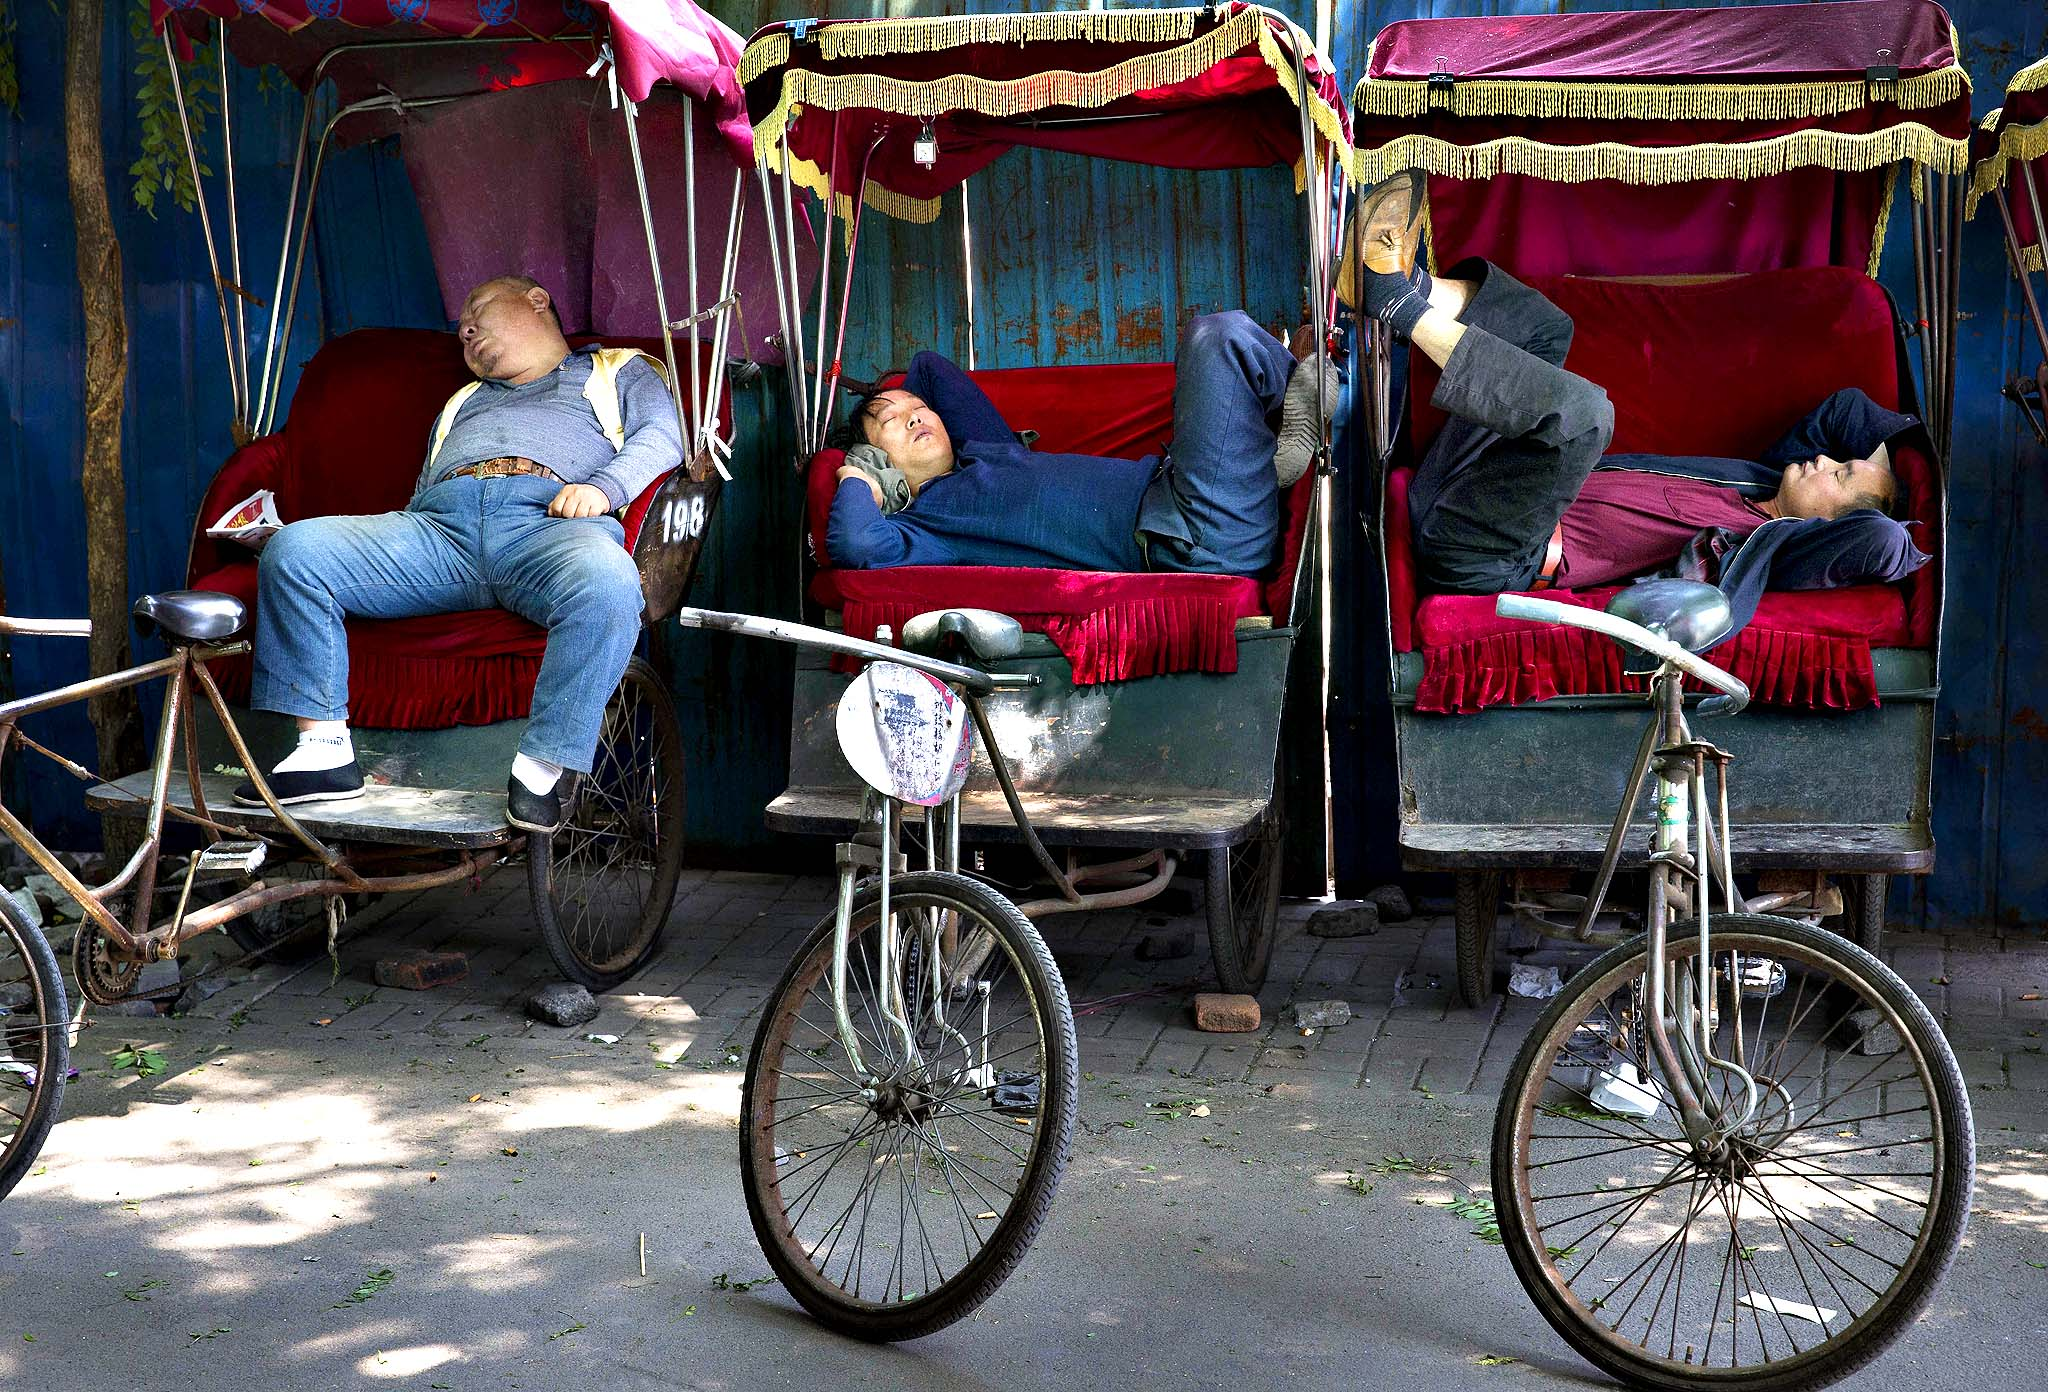 Chinese trishaw drivers take nap while waiting for customers at a hutong alley near the drum tower, a tourist spot in Beijing, China Wednesday, May 7, 2014.